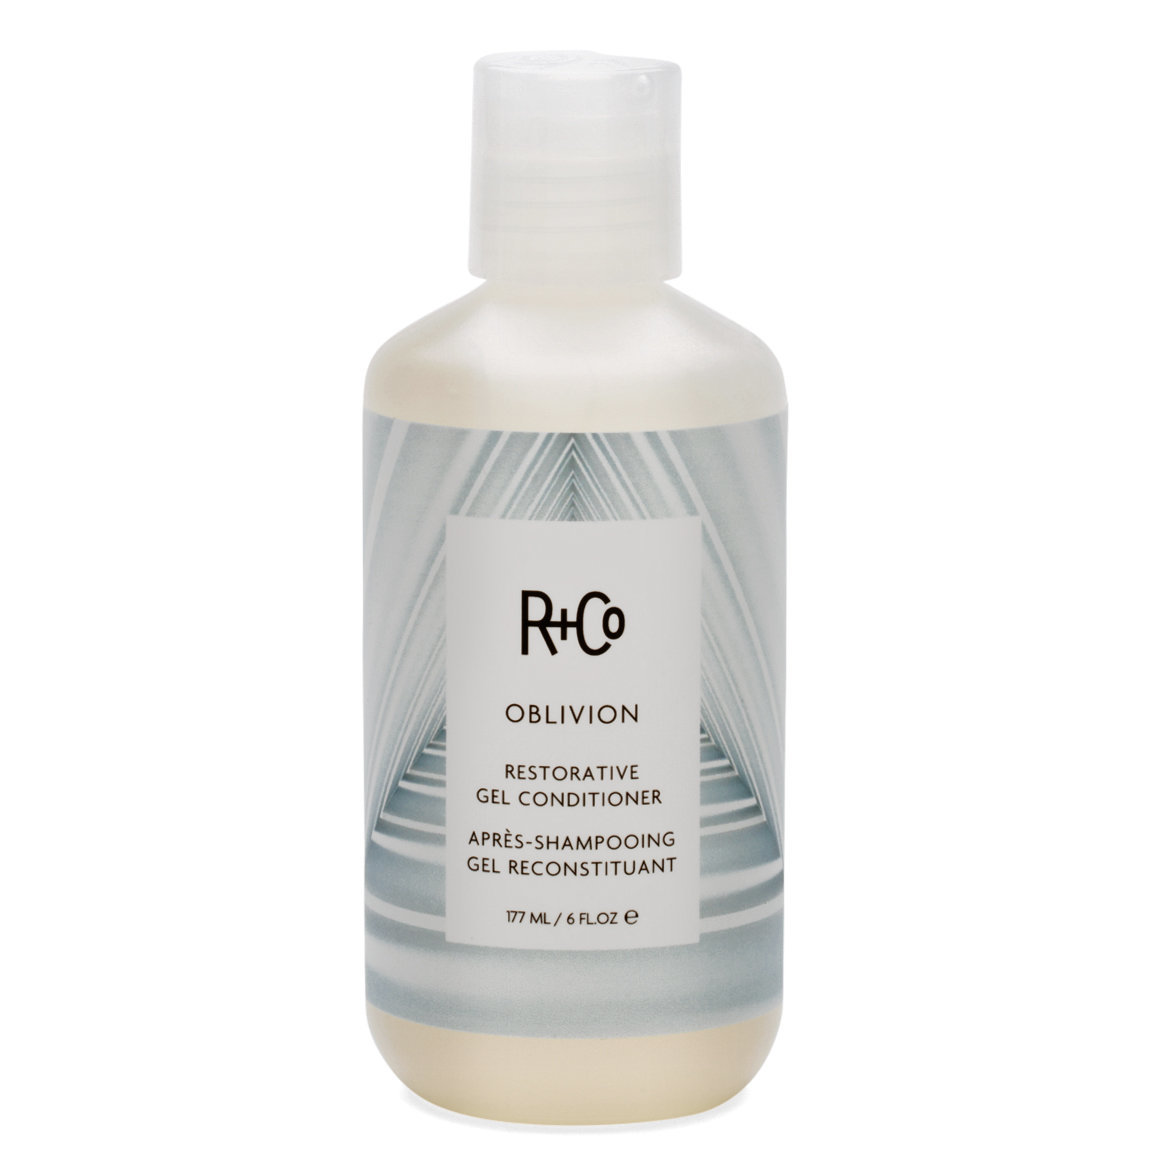 R+Co Oblivion Restorative Gel Conditioner product swatch.